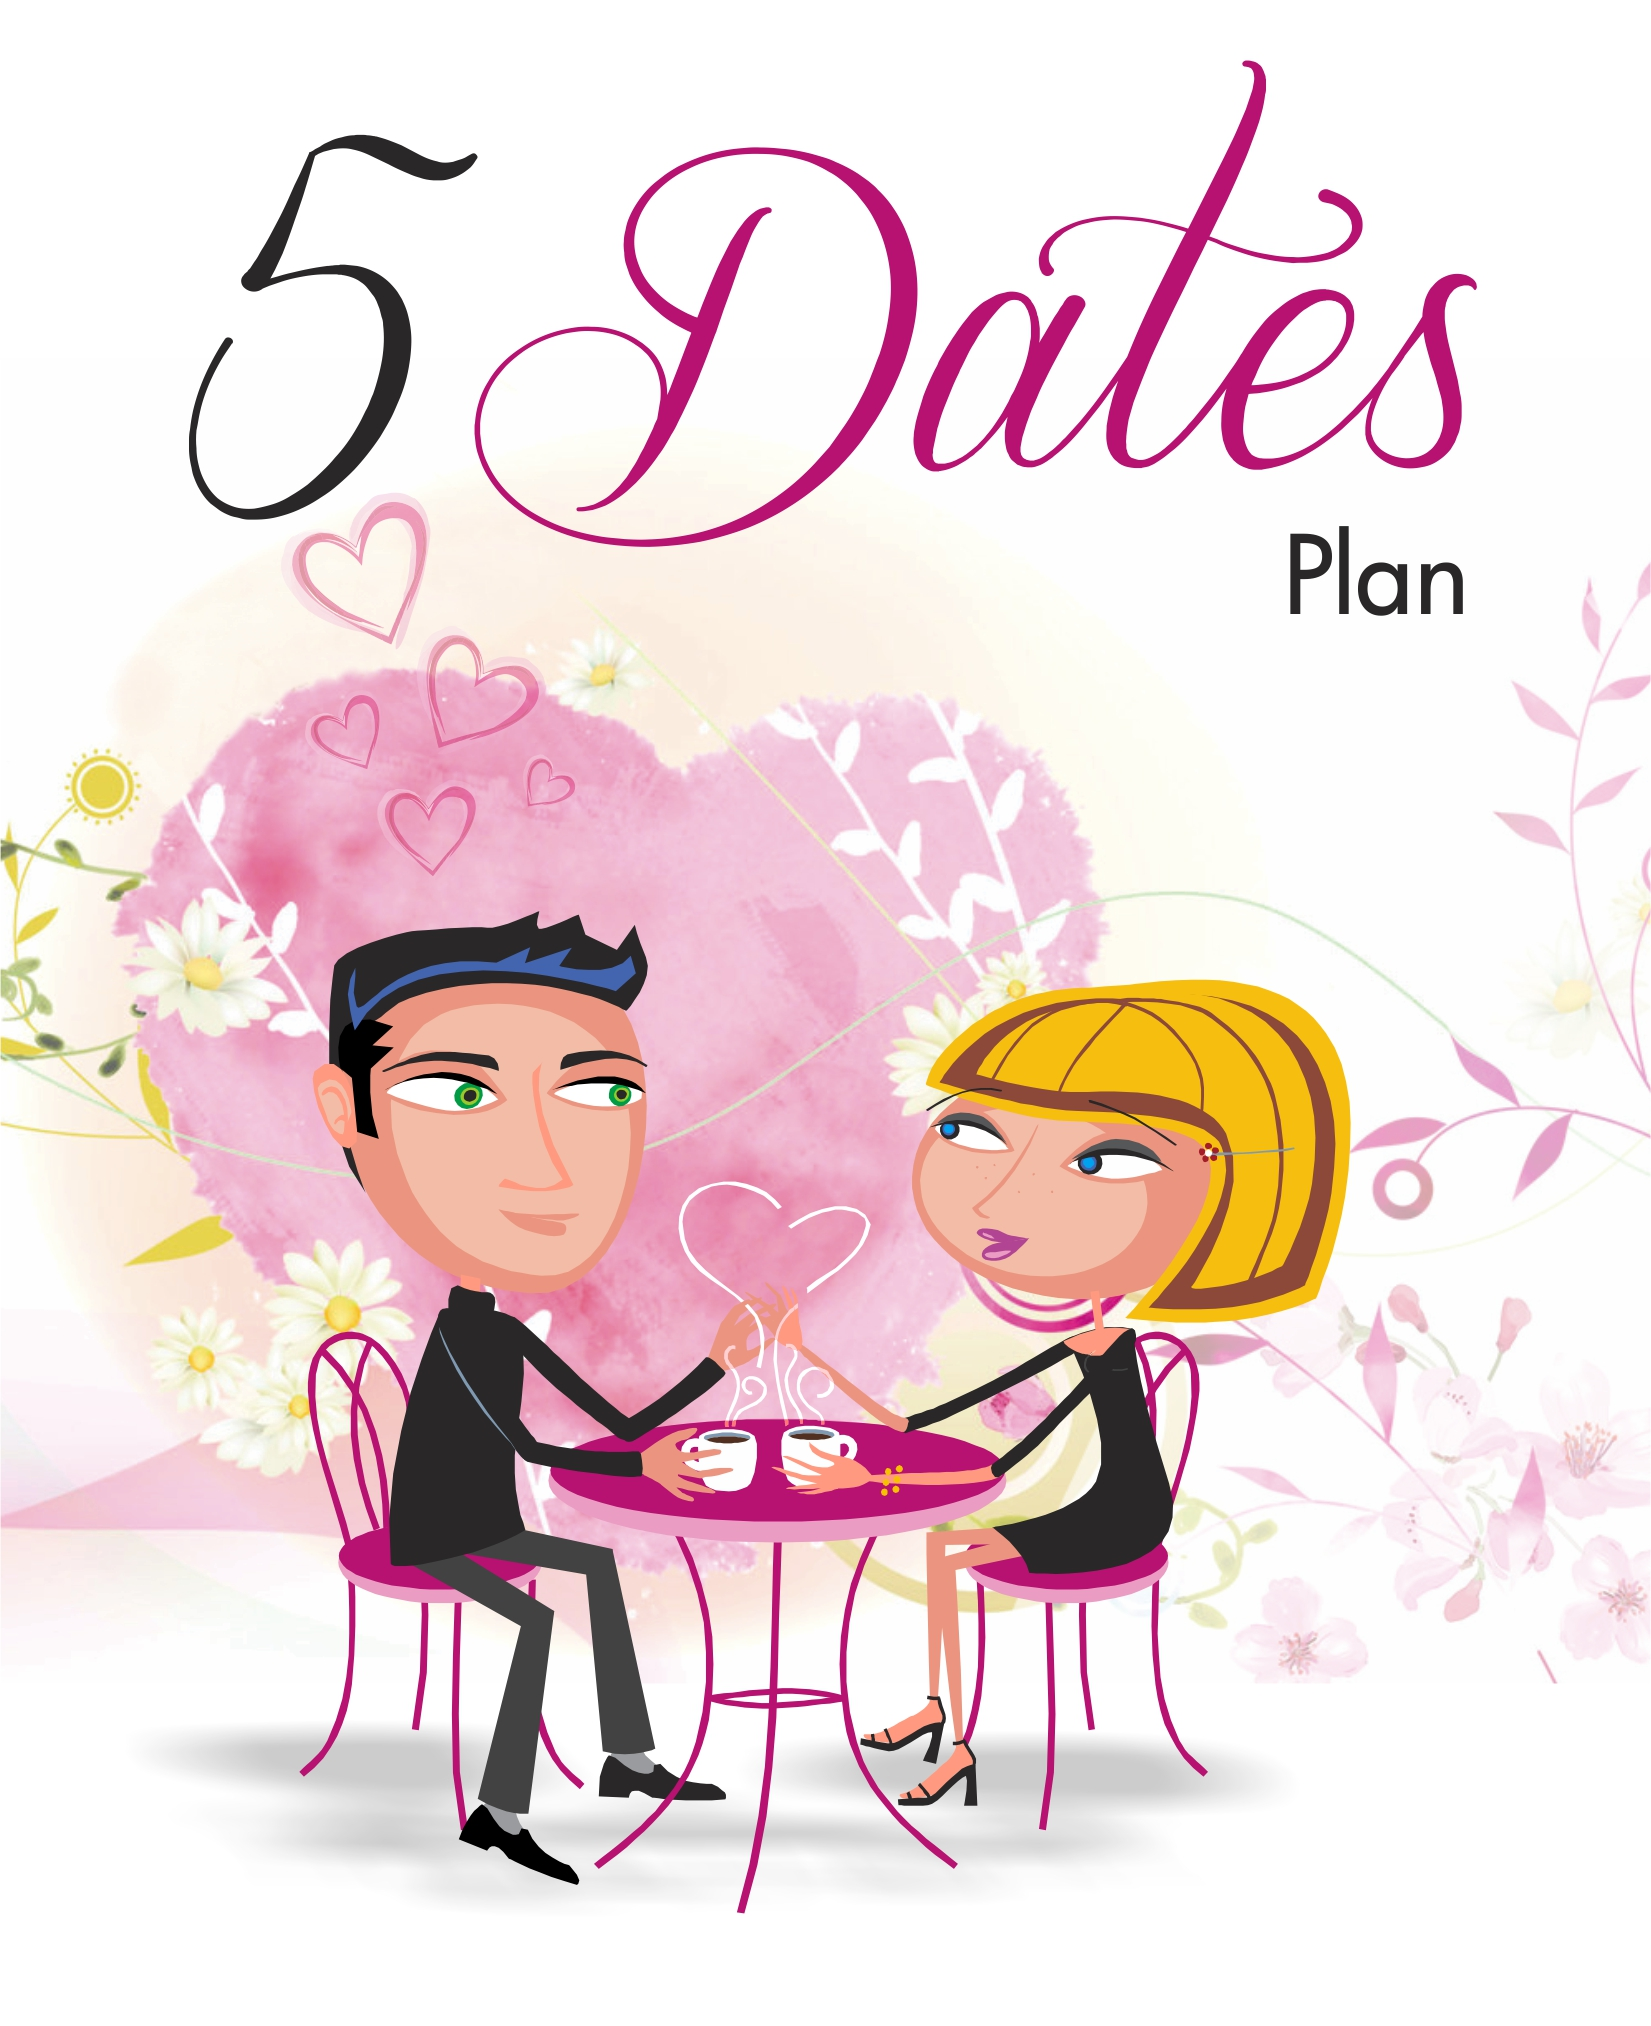 A unique dating app which  includes an e-mail to send out to your network to set up your own                               5 Dates Plan, plus a tracking page for each of your 5 bachelors or bachelorettes.